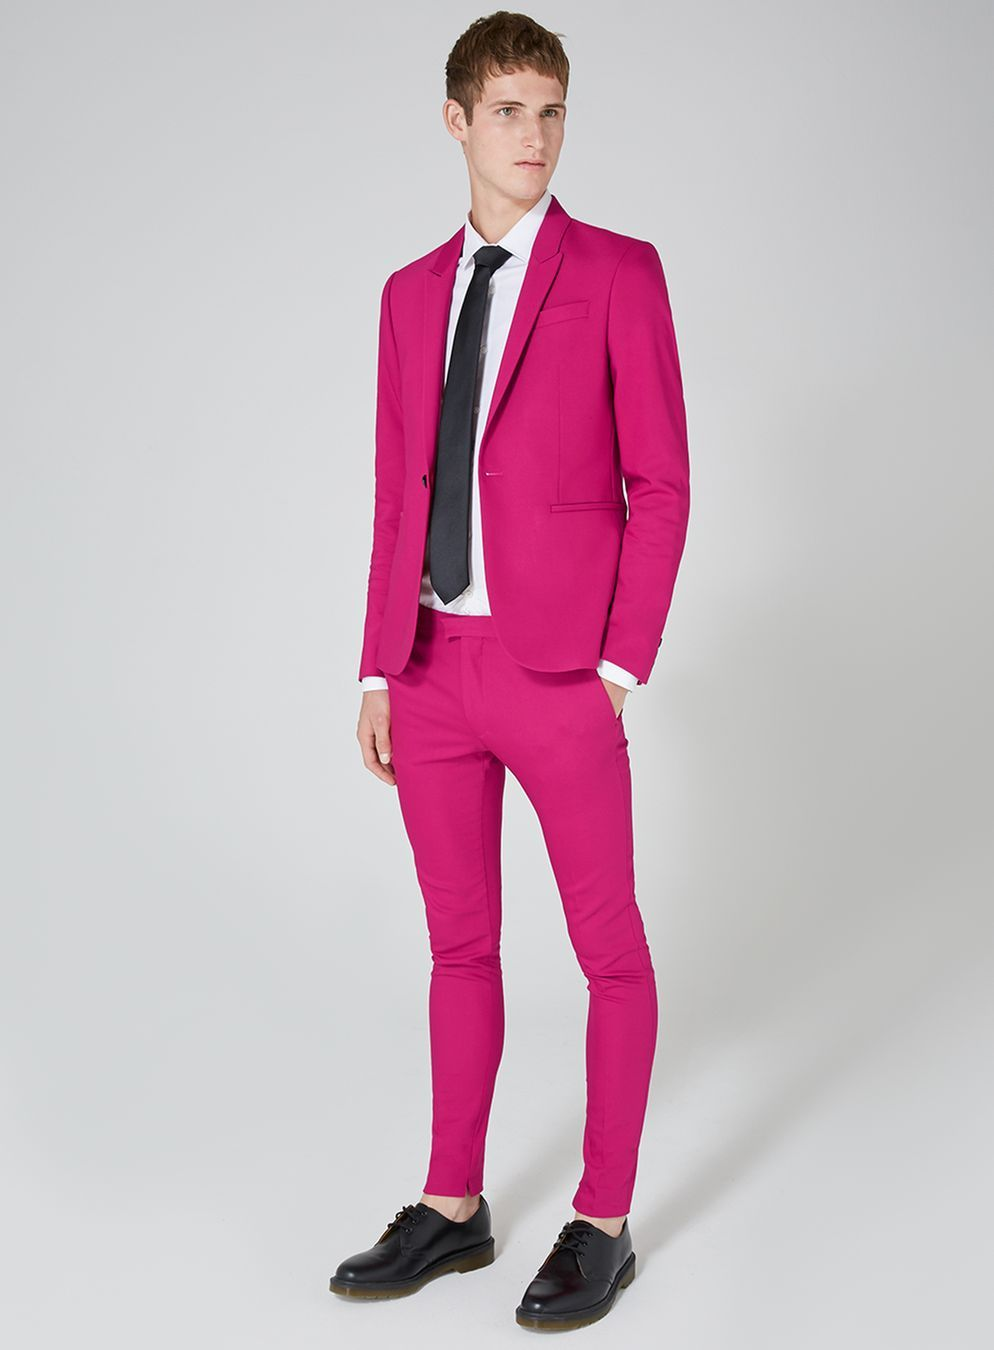 Bright Pink Spray On Suit | Bright pink